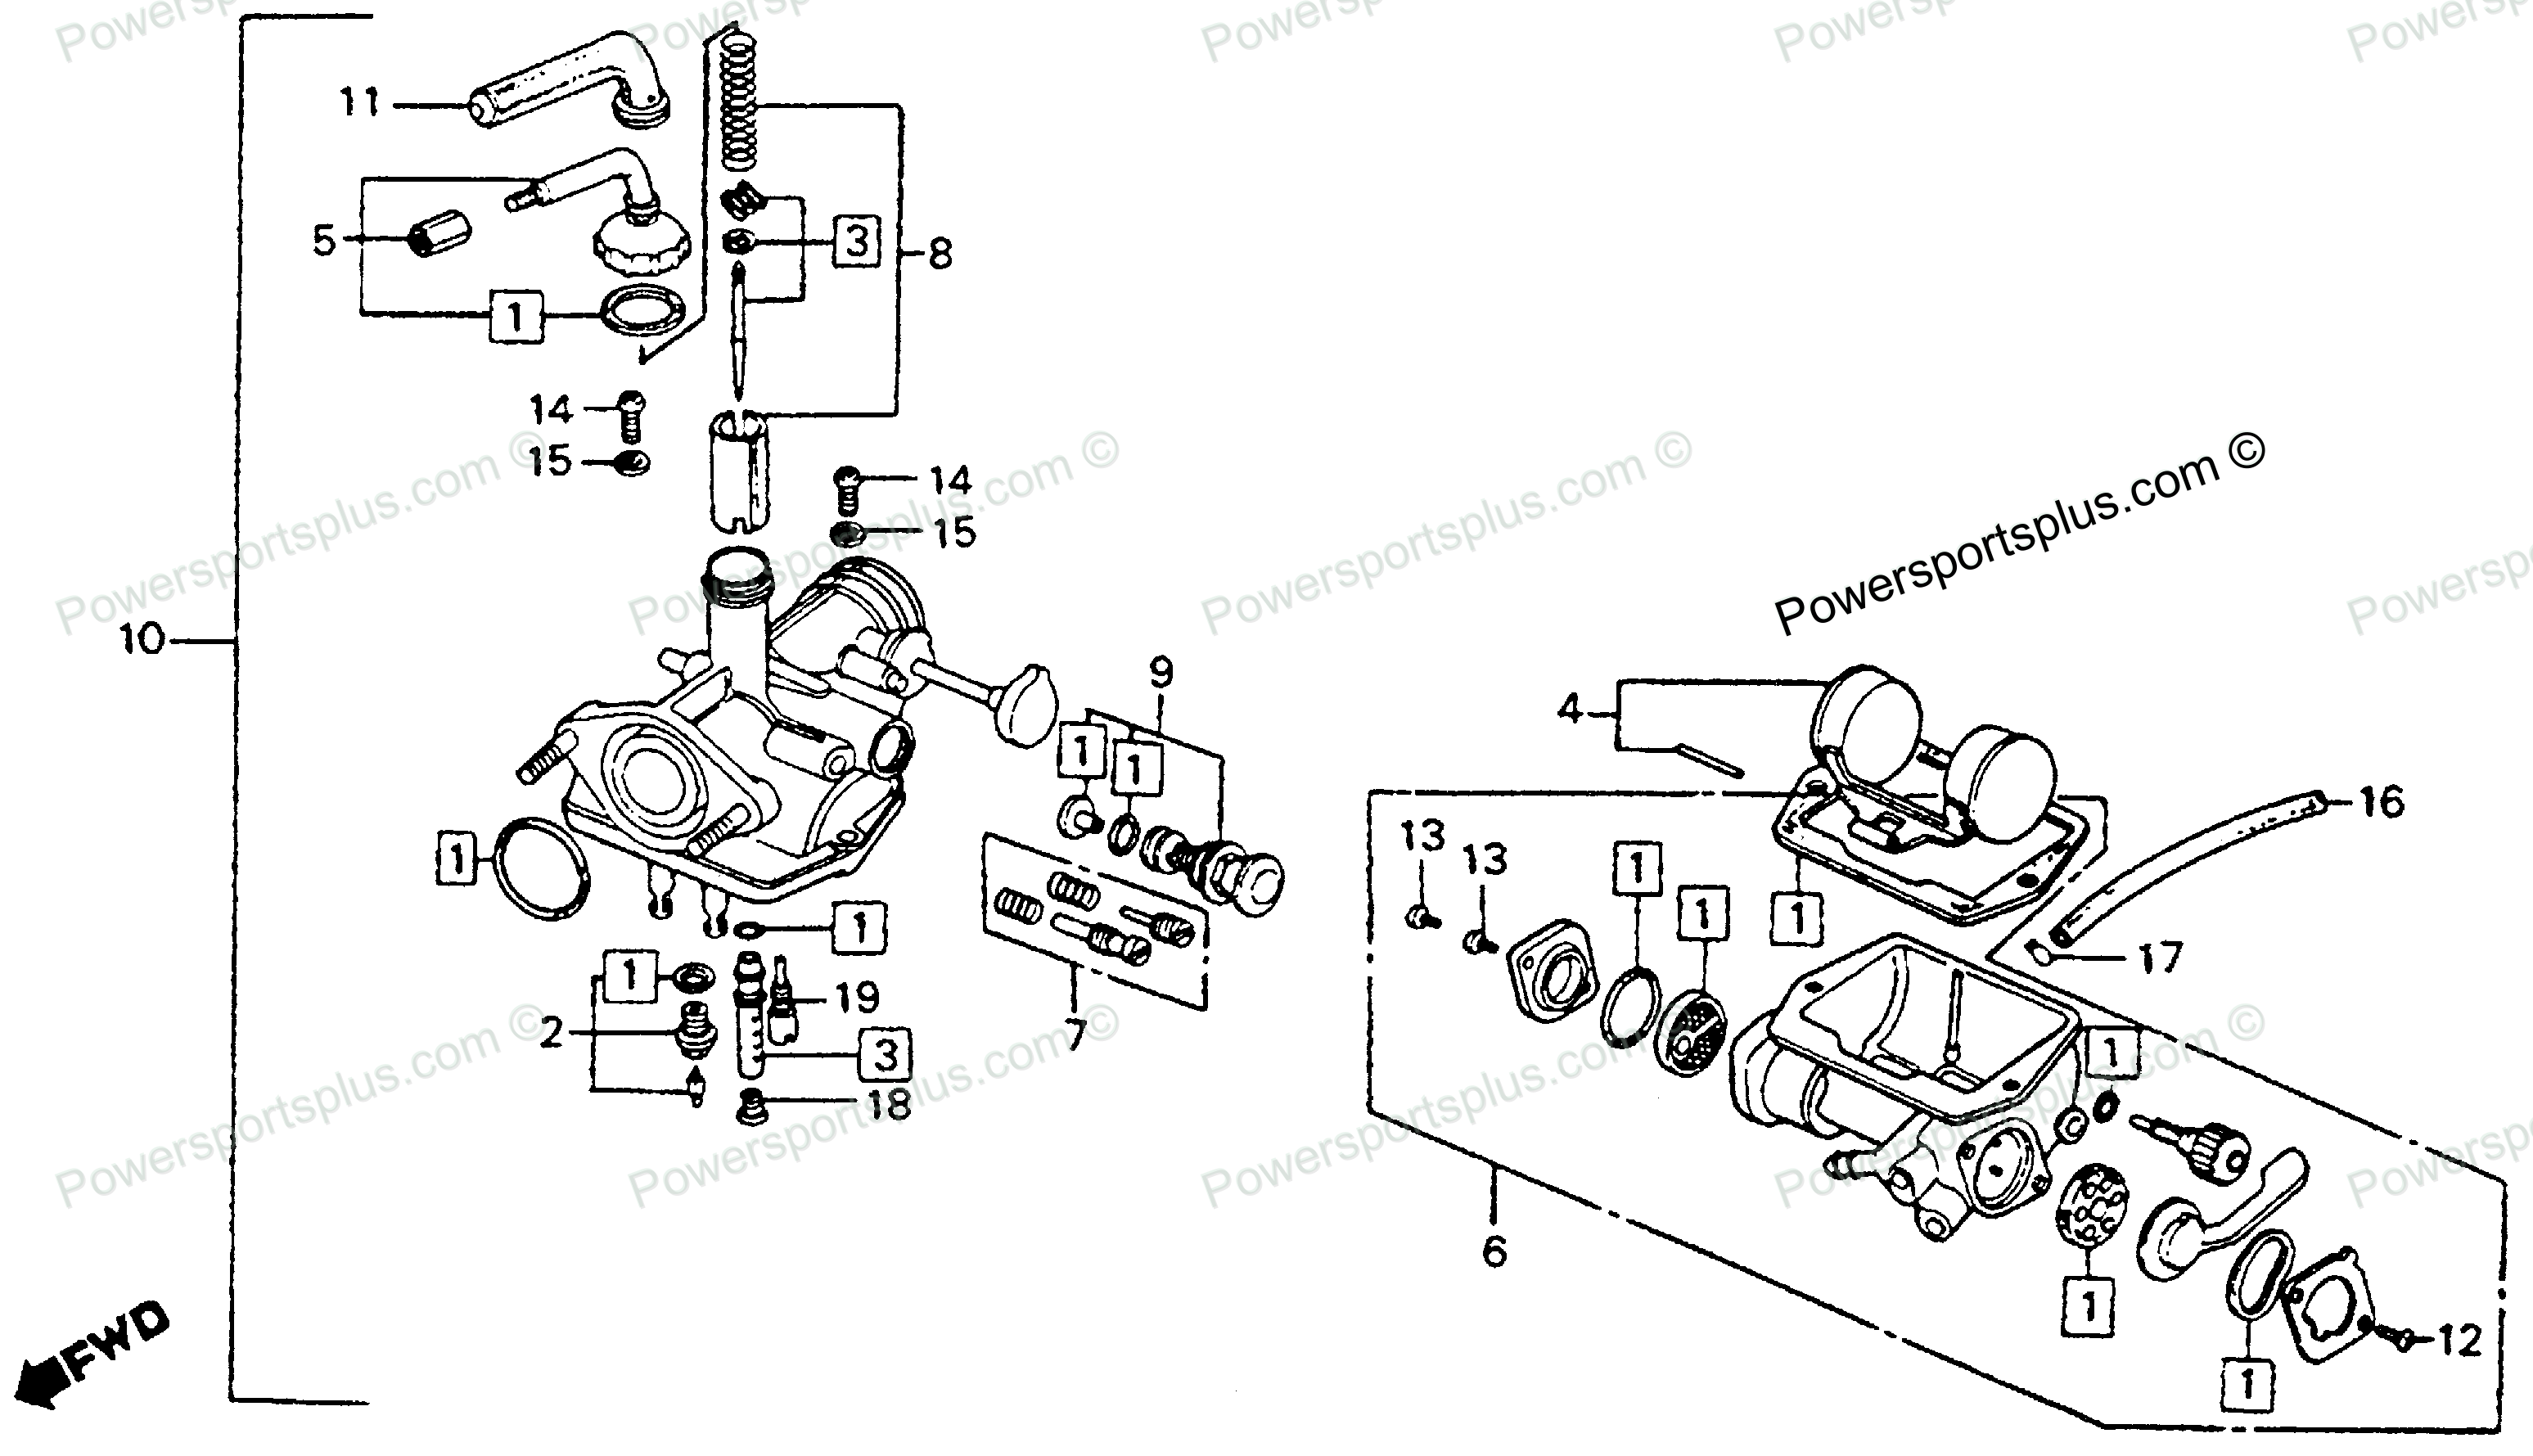 Honda Cb750 Wiring Diagram Honda Auto Fuse Box Diagram